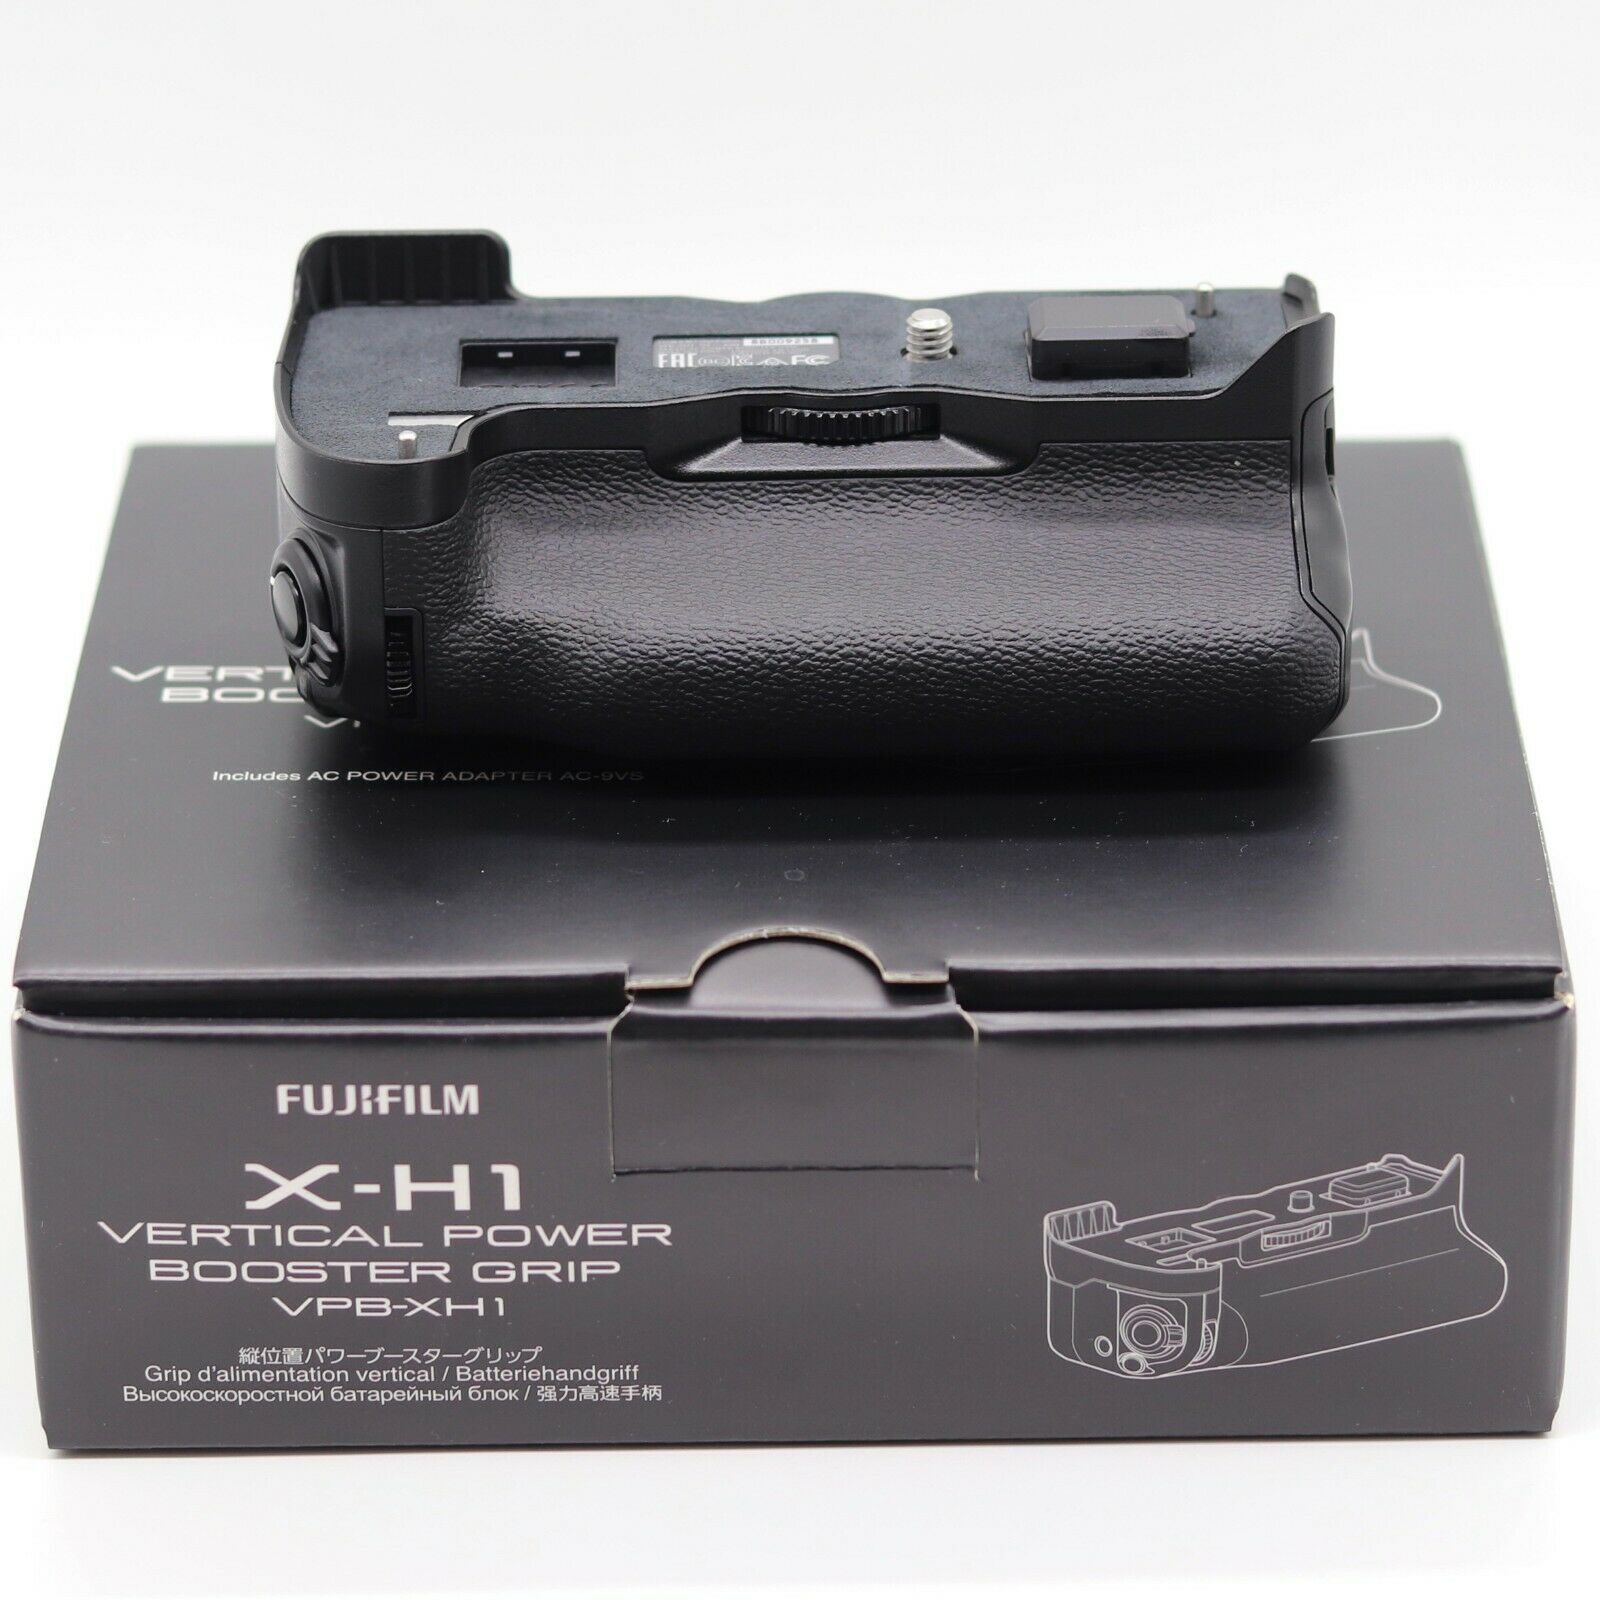 New Fujifilm X-H1 Vertical Power Booster Grip VBP-XH1 Boxed New